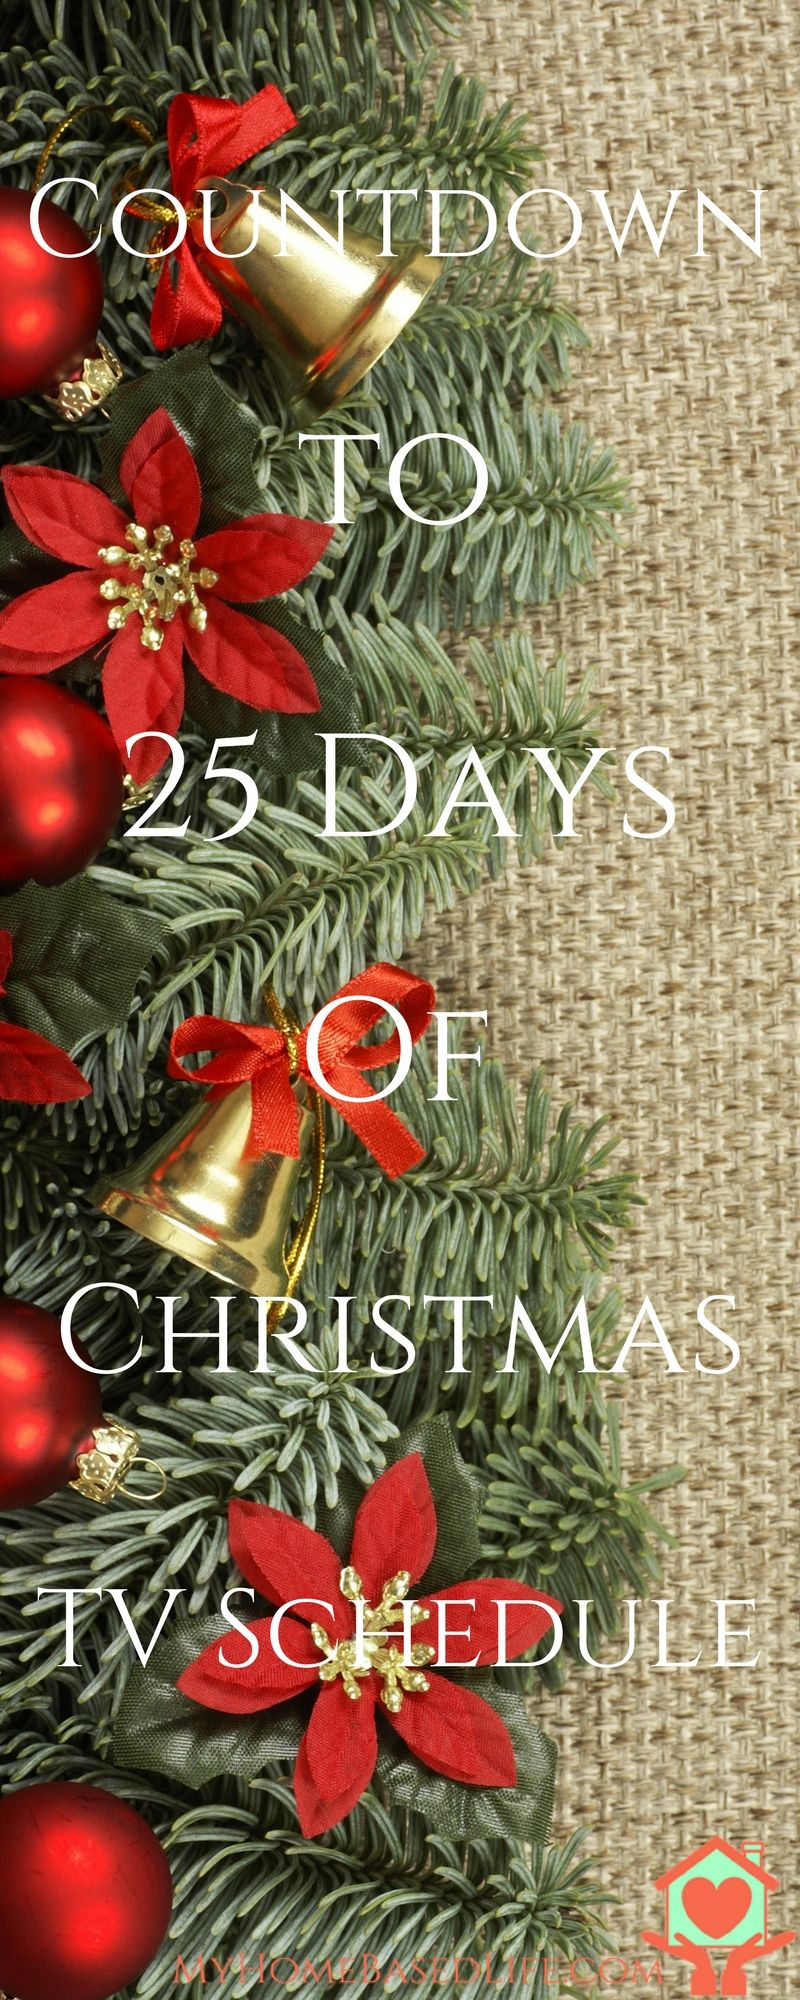 Countdown to 25 Days Of Christmas TV Schedule My Home